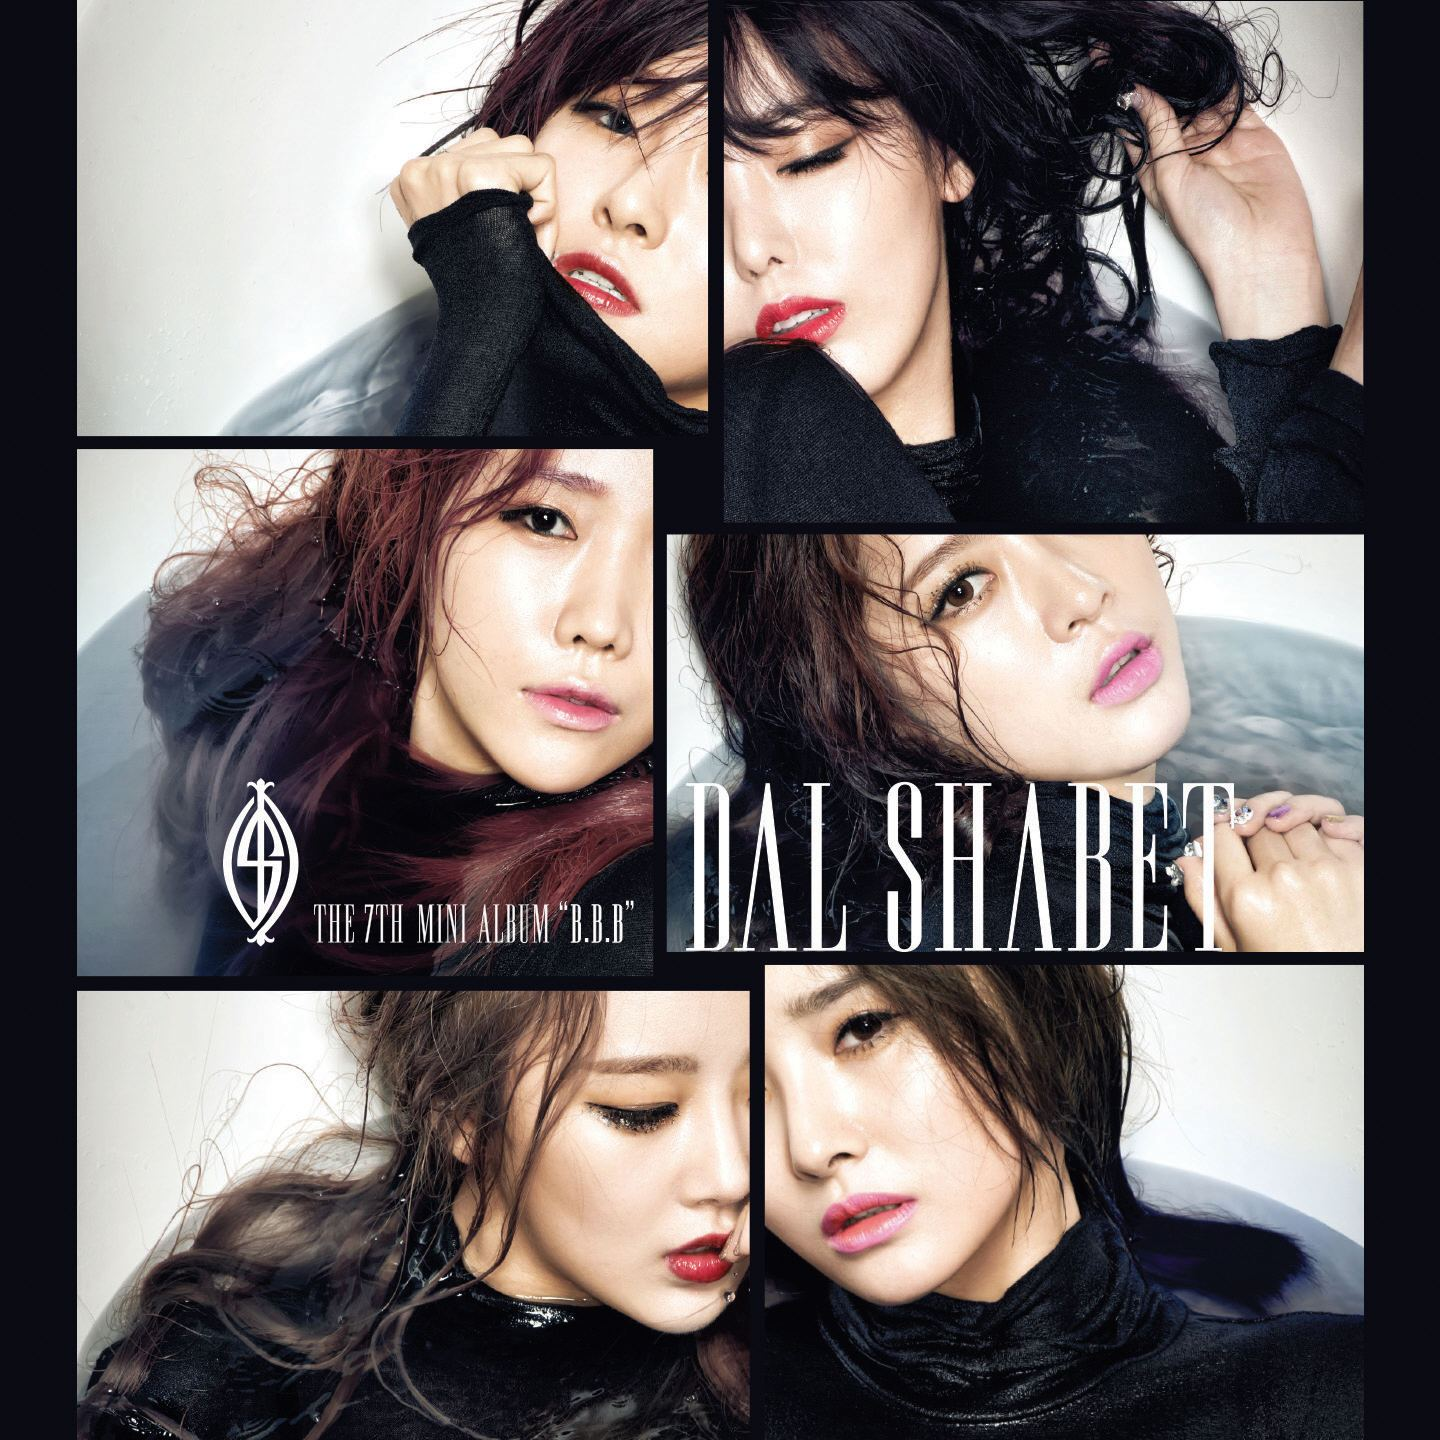 [Mini Album] DAL SHABET - B.B.B [The 7th Mini Album]